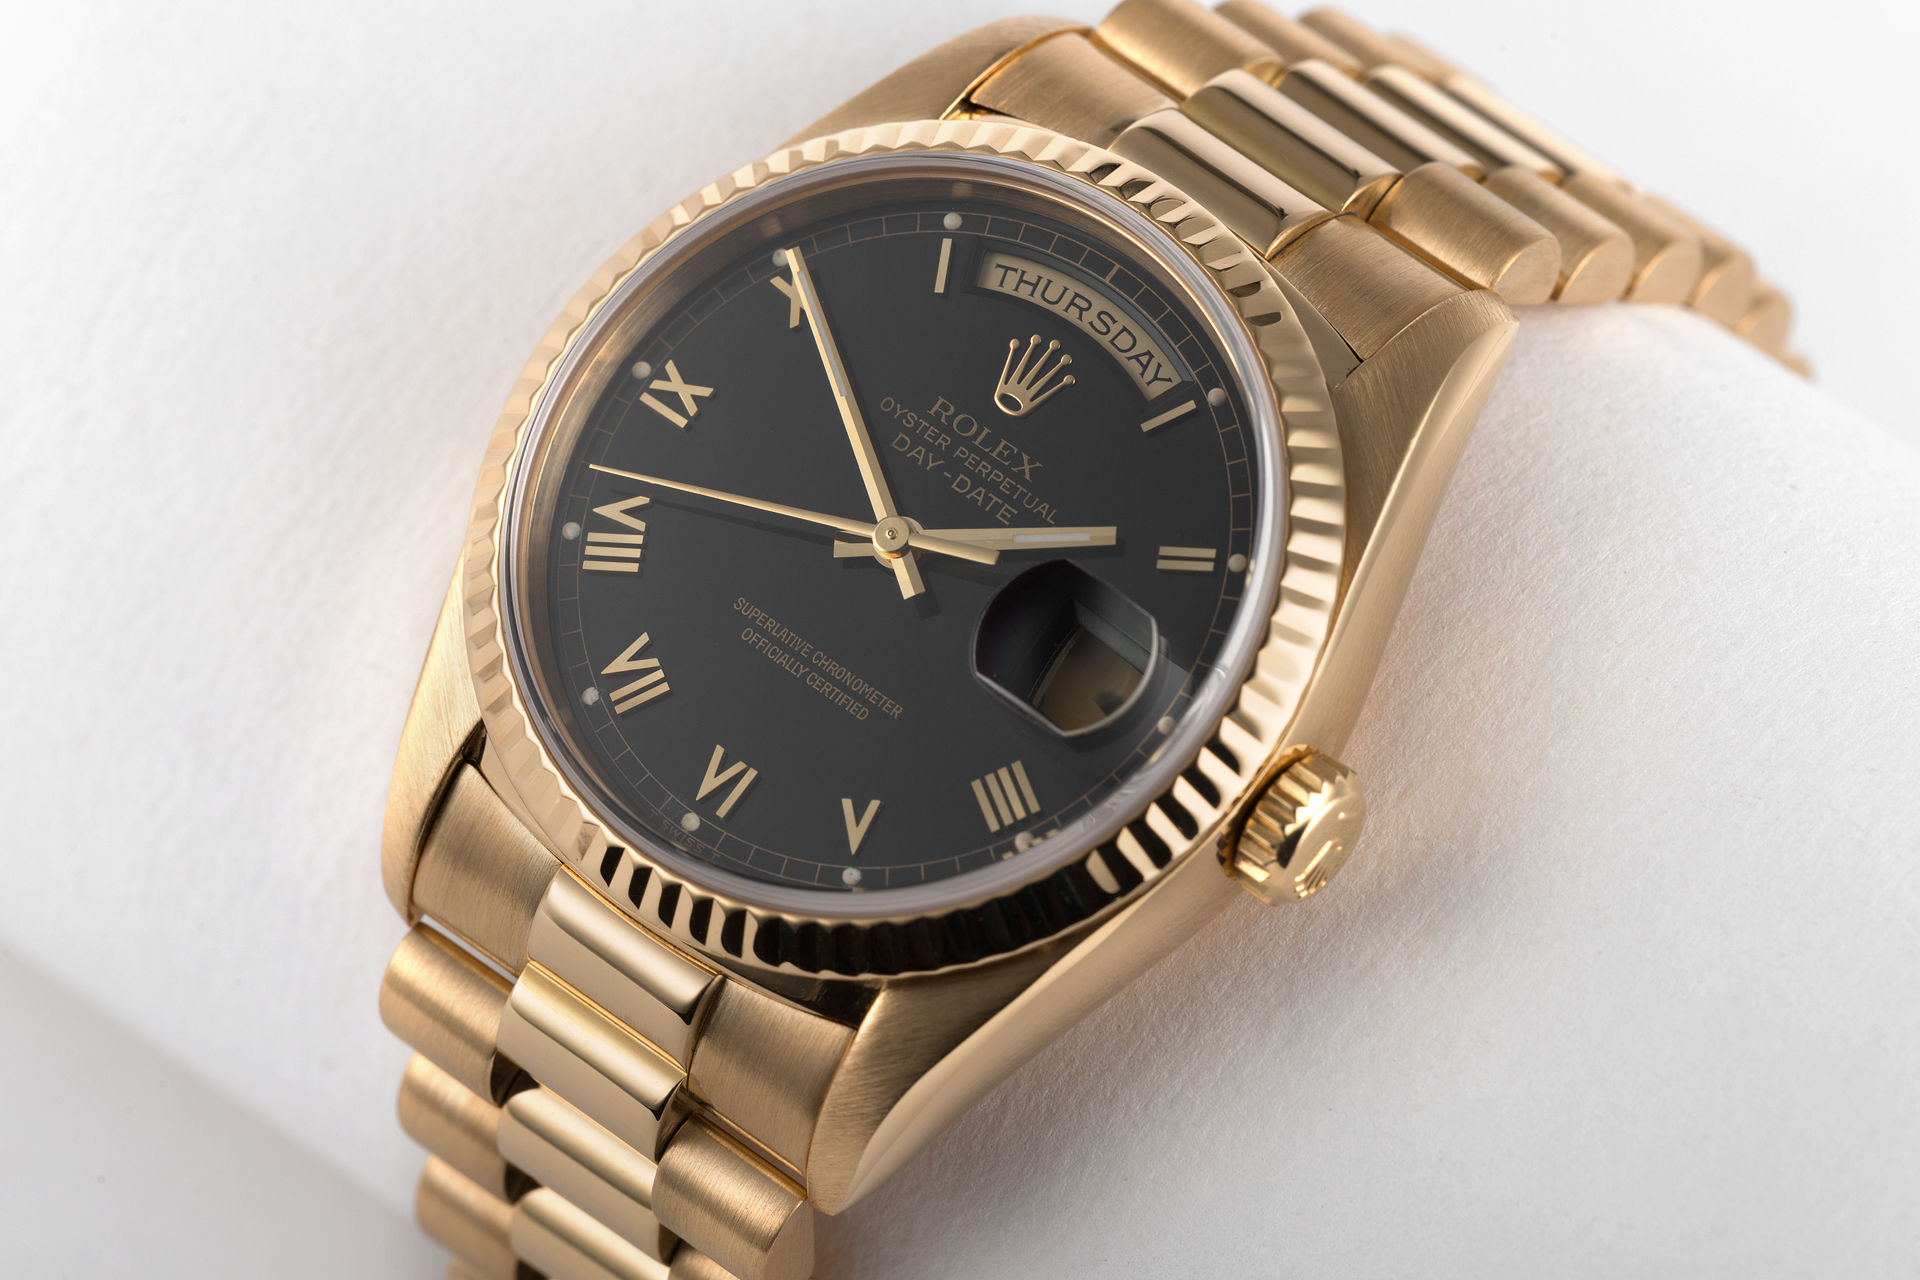 ref 18238 | Yellow Gold 'Full Set' | Rolex Day-Date